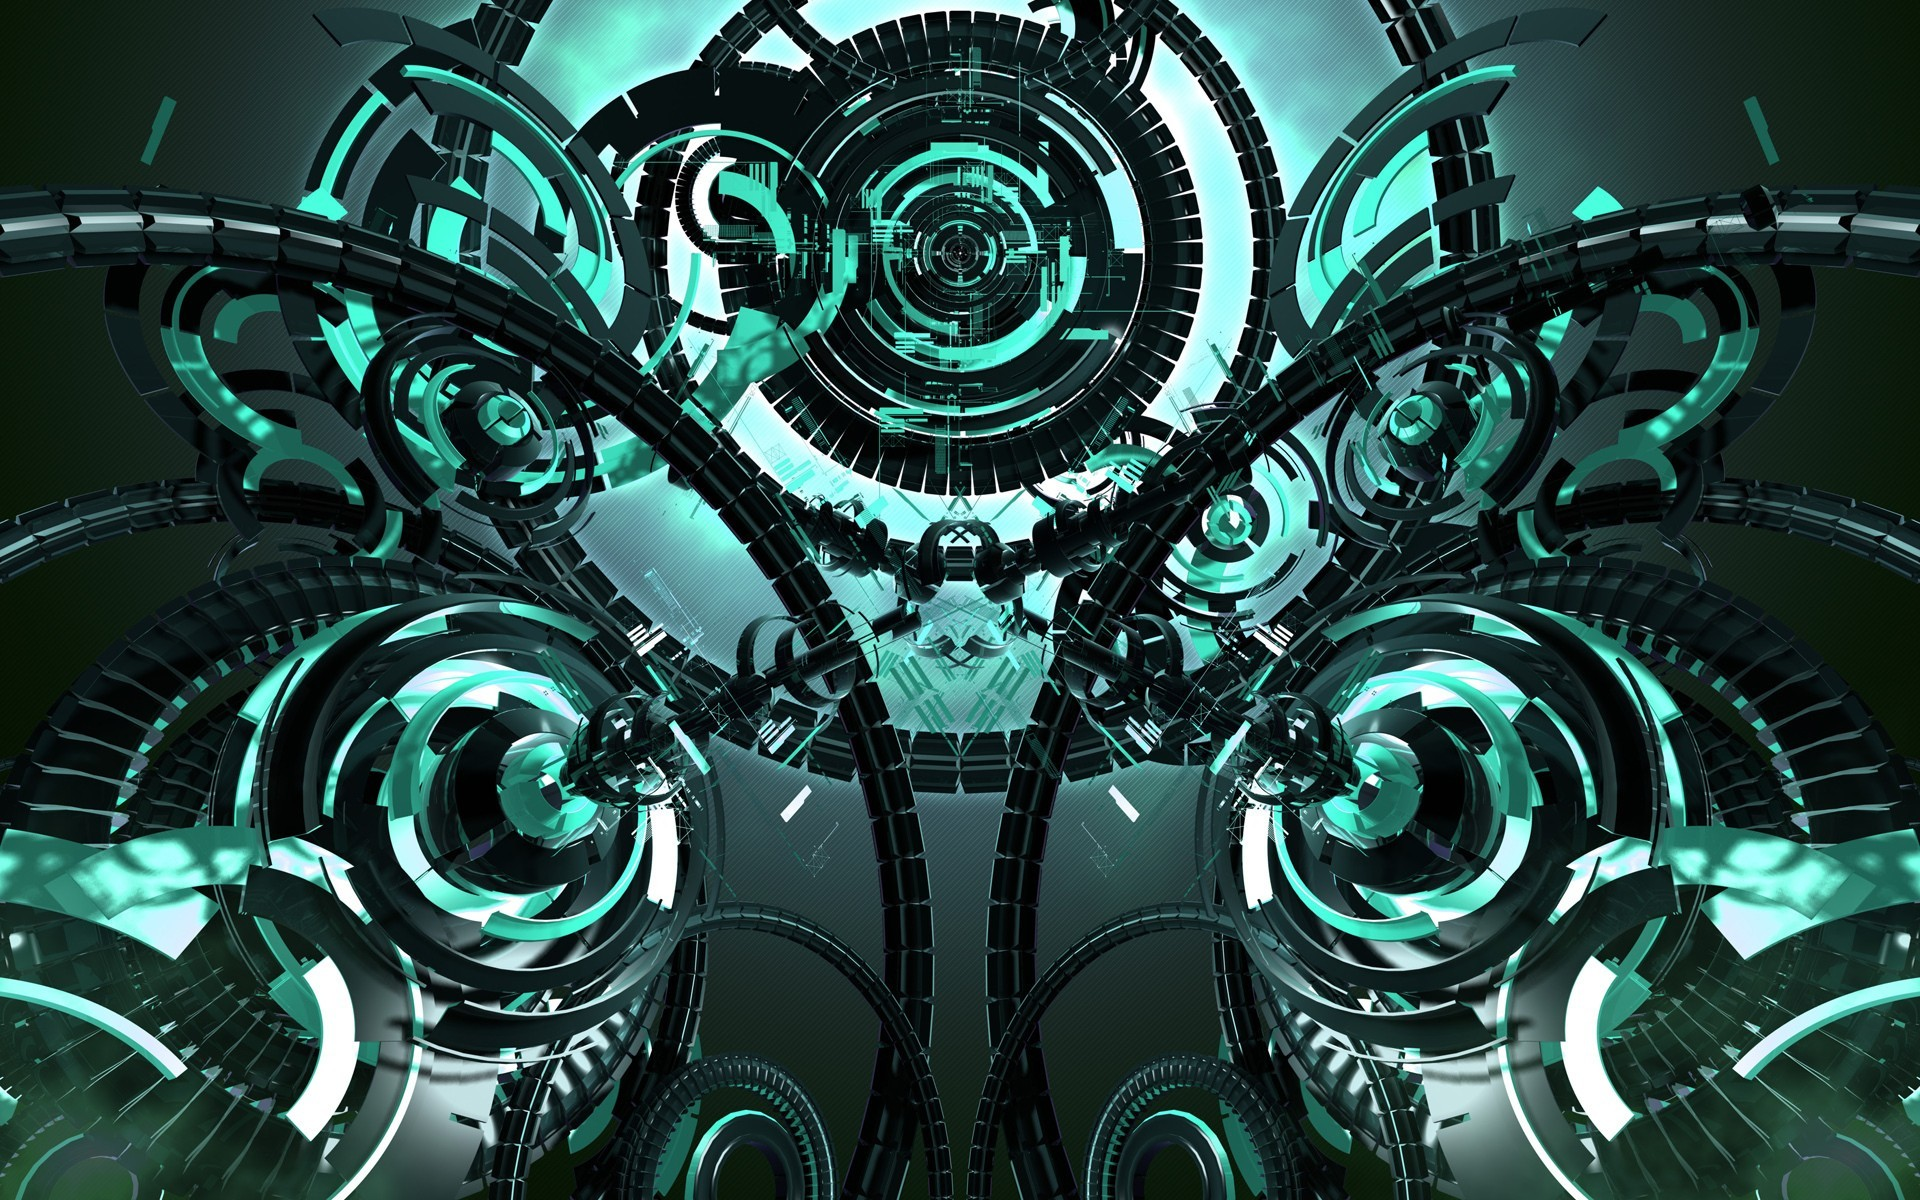 Res: 1920x1200, Futuristic Tech Wallpaper Desktop Ro1t Cyber Gate Company throughout Tech  Wallpapers 2015